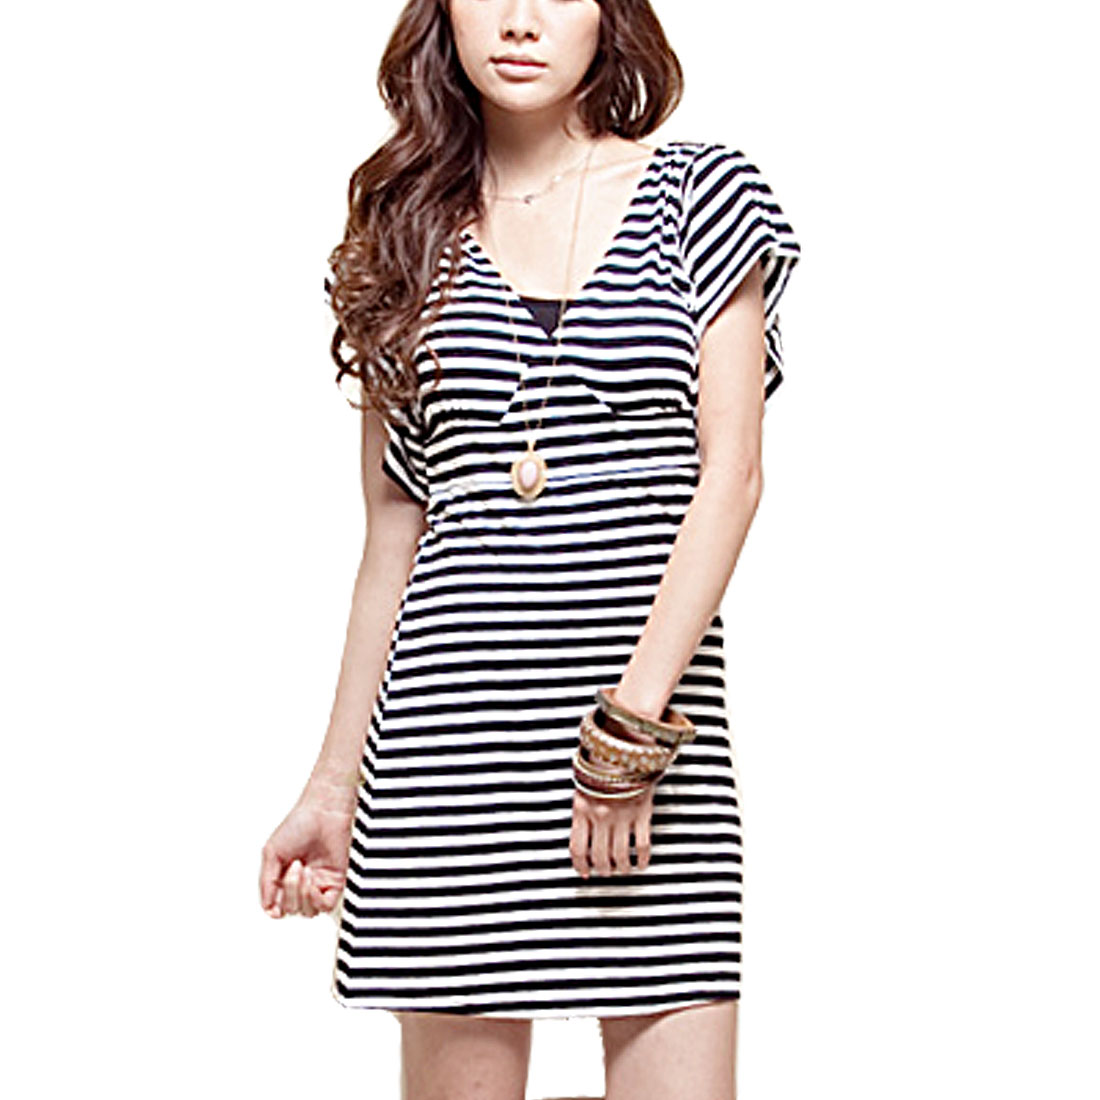 Ladies Short Sleeve Deep V Neck Black White Striped Mini Dress S